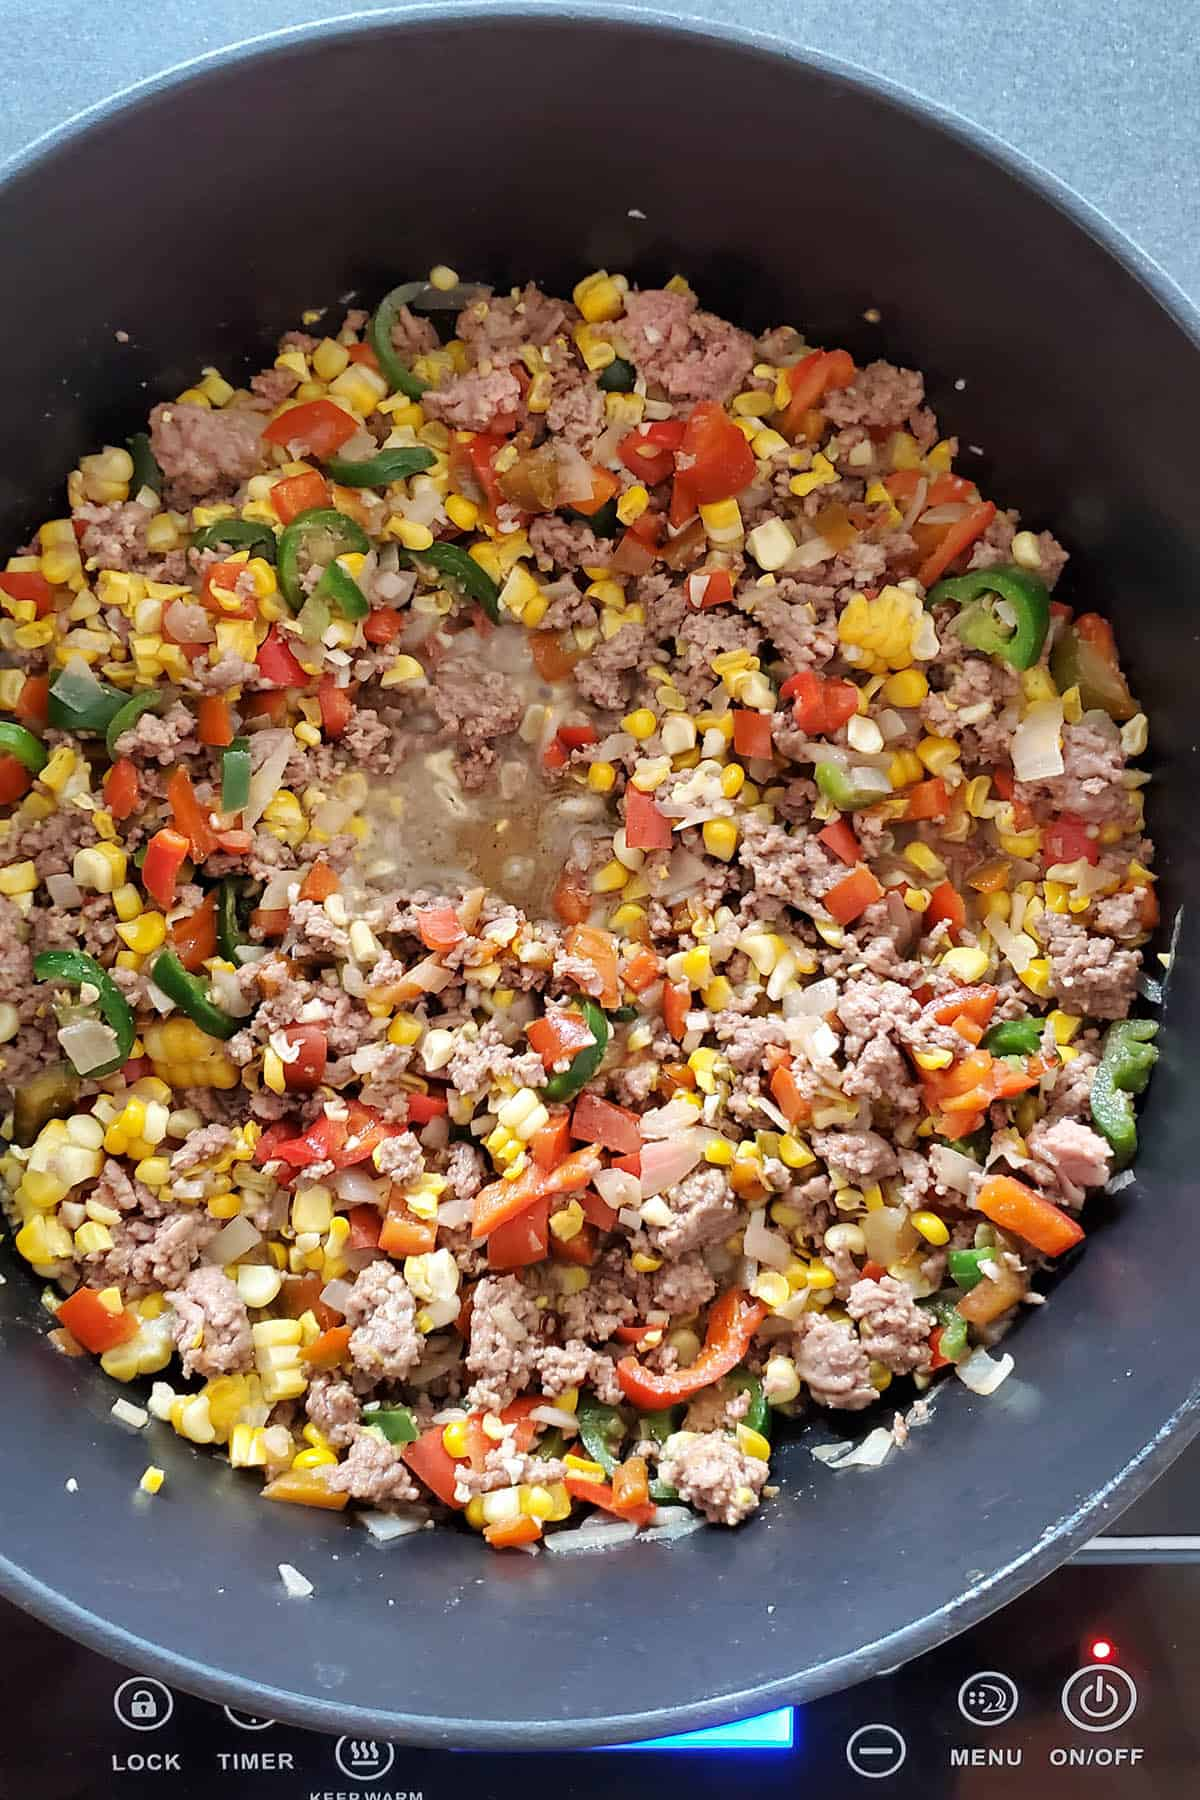 Meat and vegetables cooked down to make taco soup